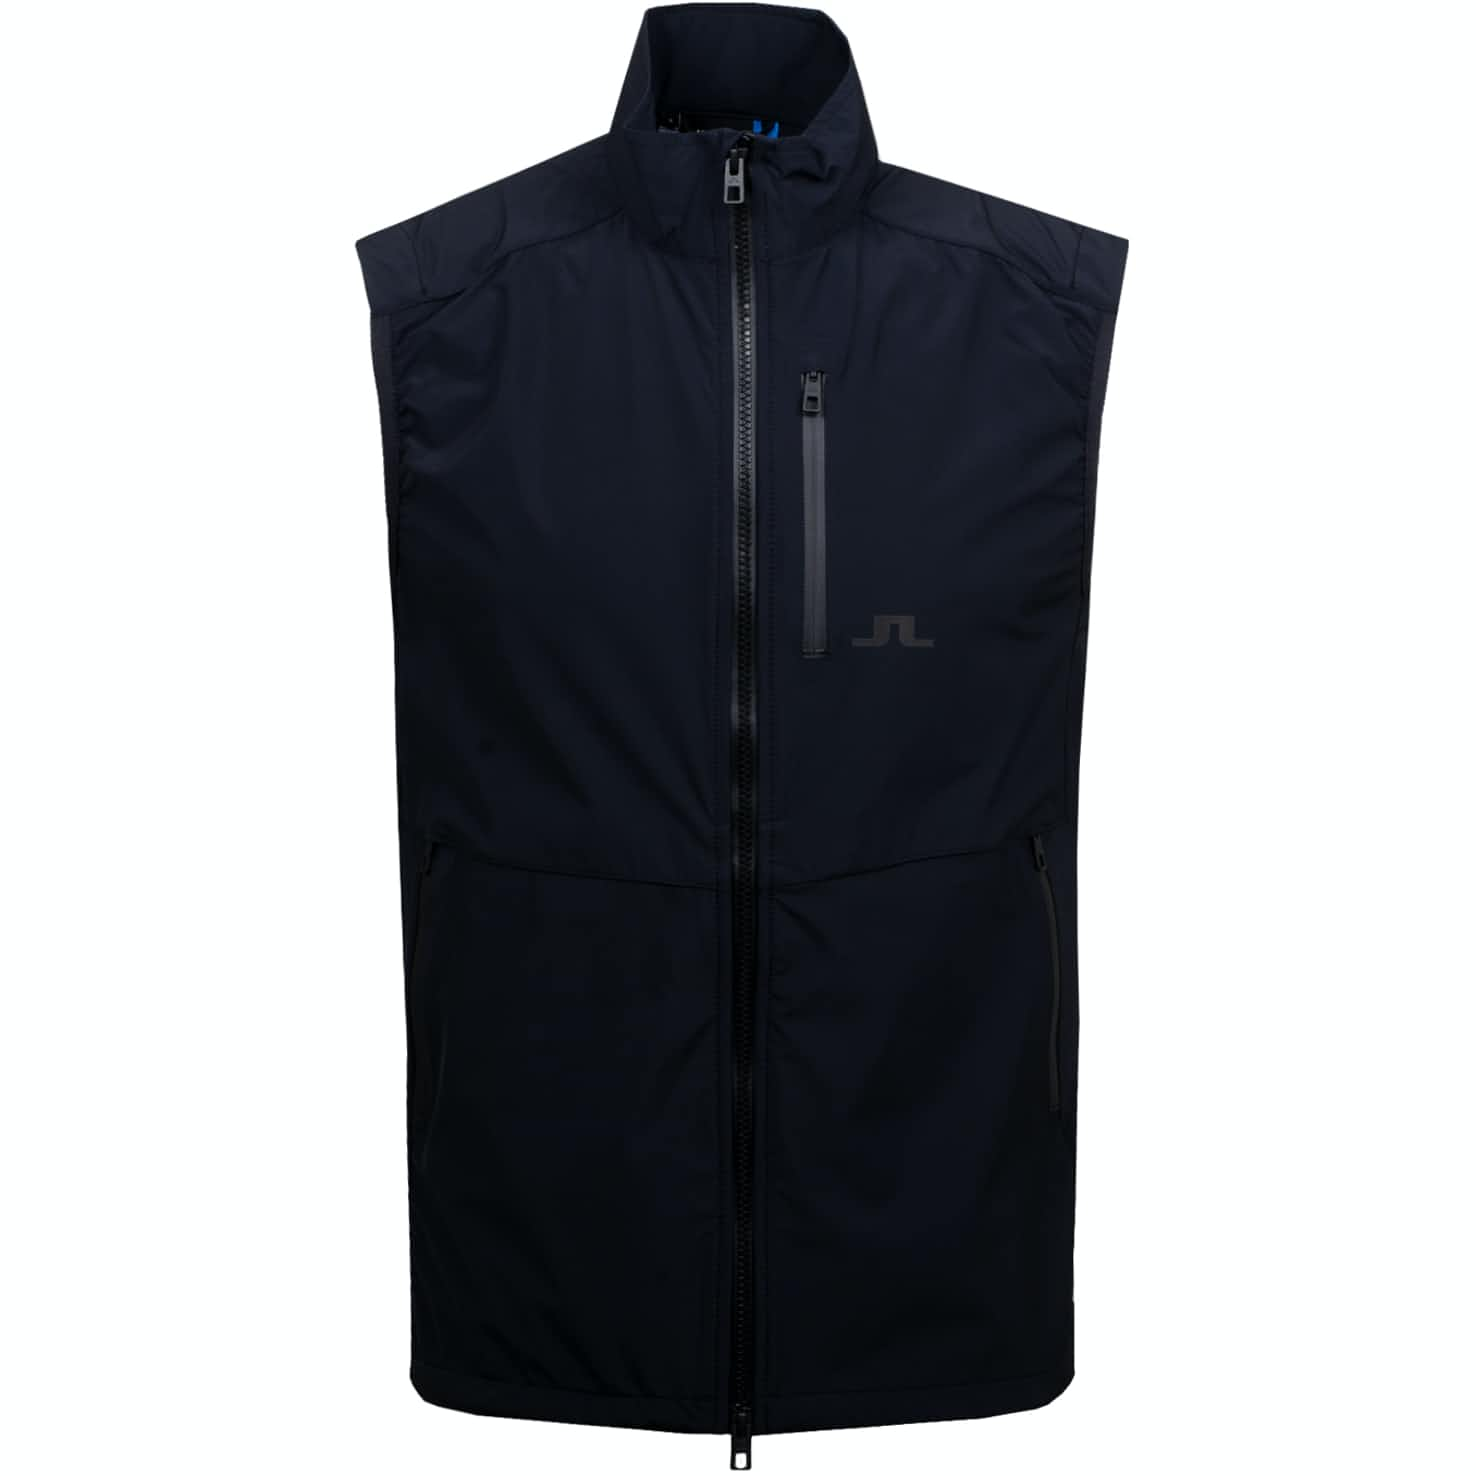 Adapt Performance Vest Lux Softshell Black - SS19